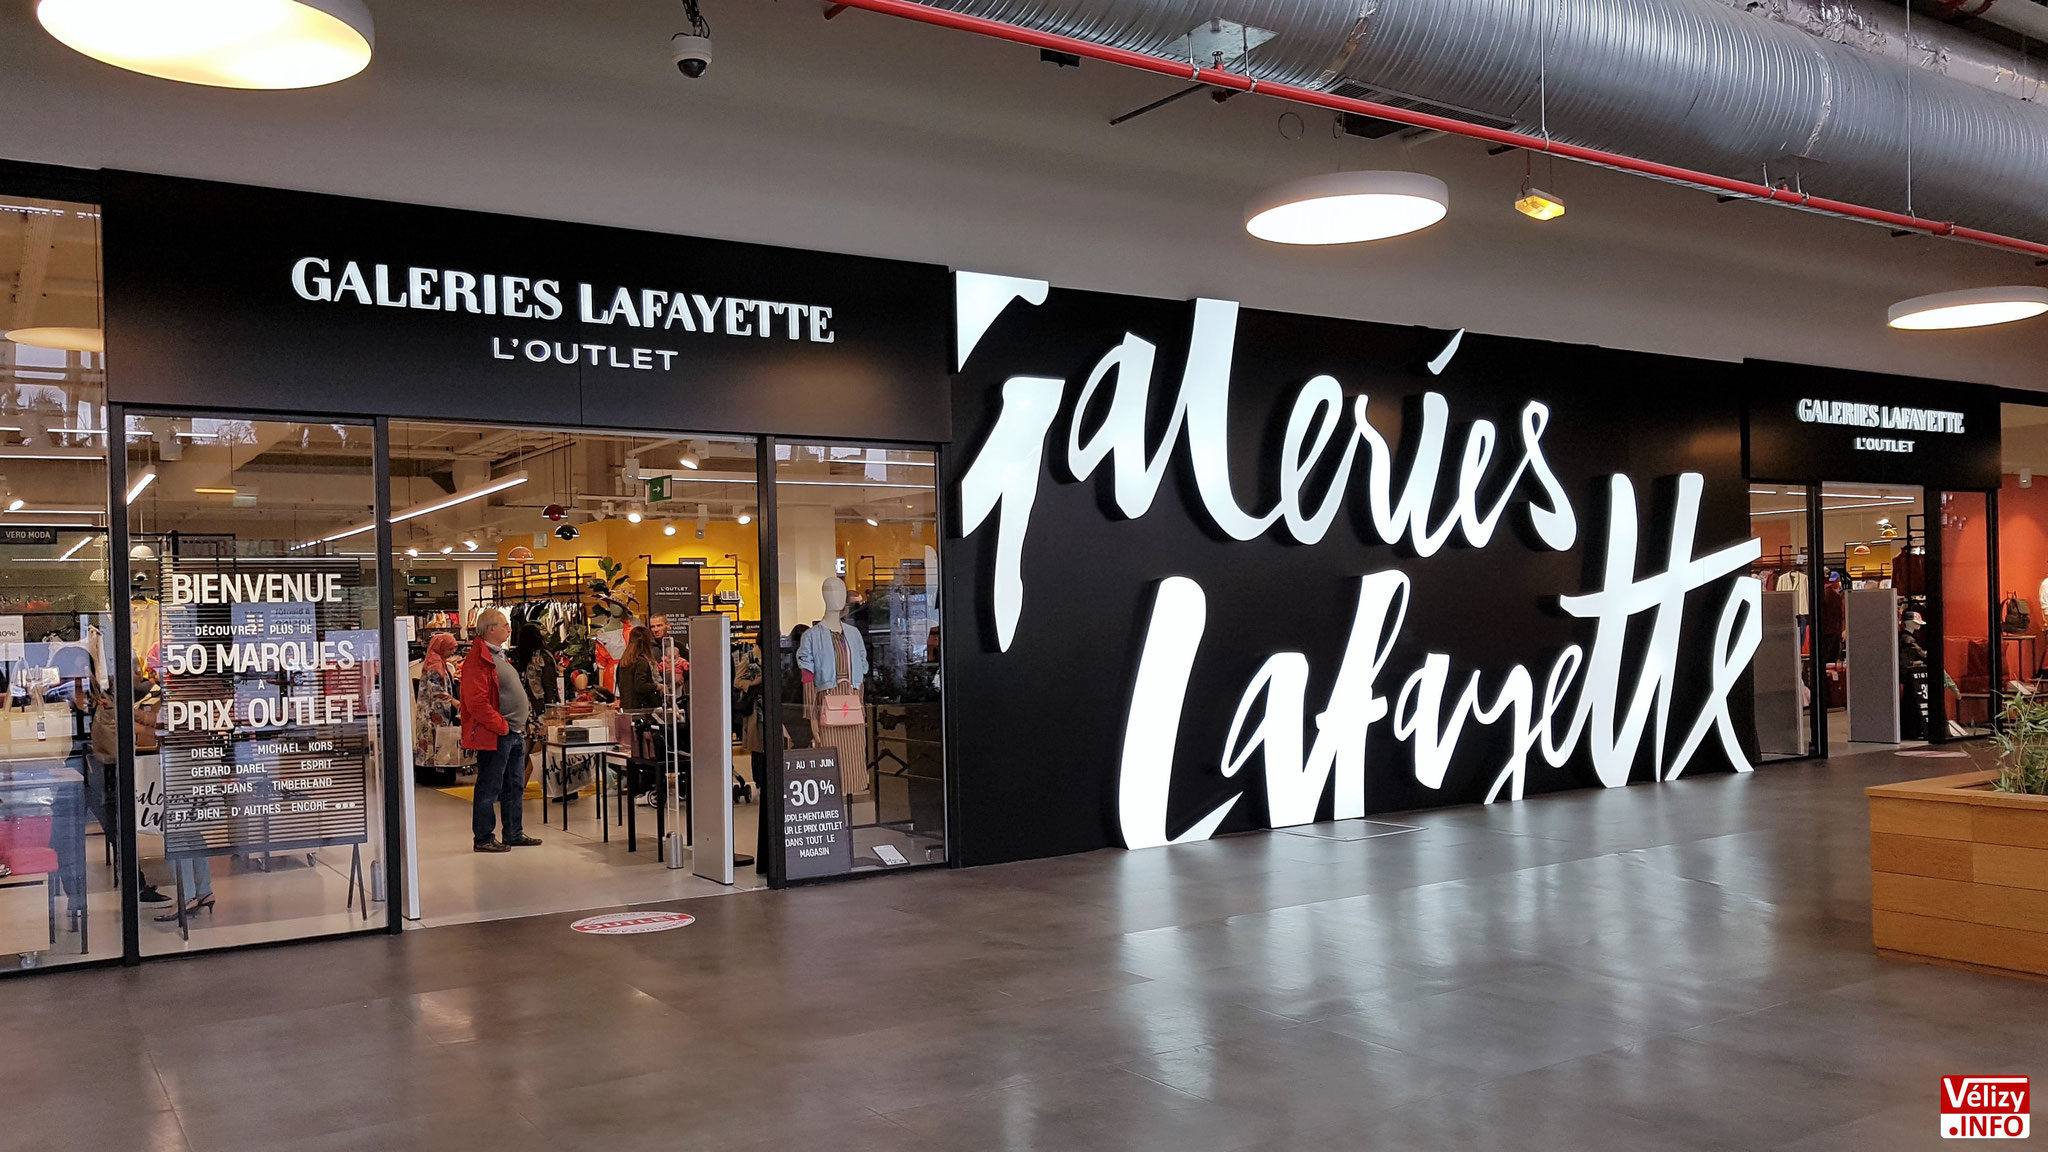 Galeries Lafayette l'Outlet - Centre Commercial L'Usine Mode & Maison - Vélizy-Villacoublay.